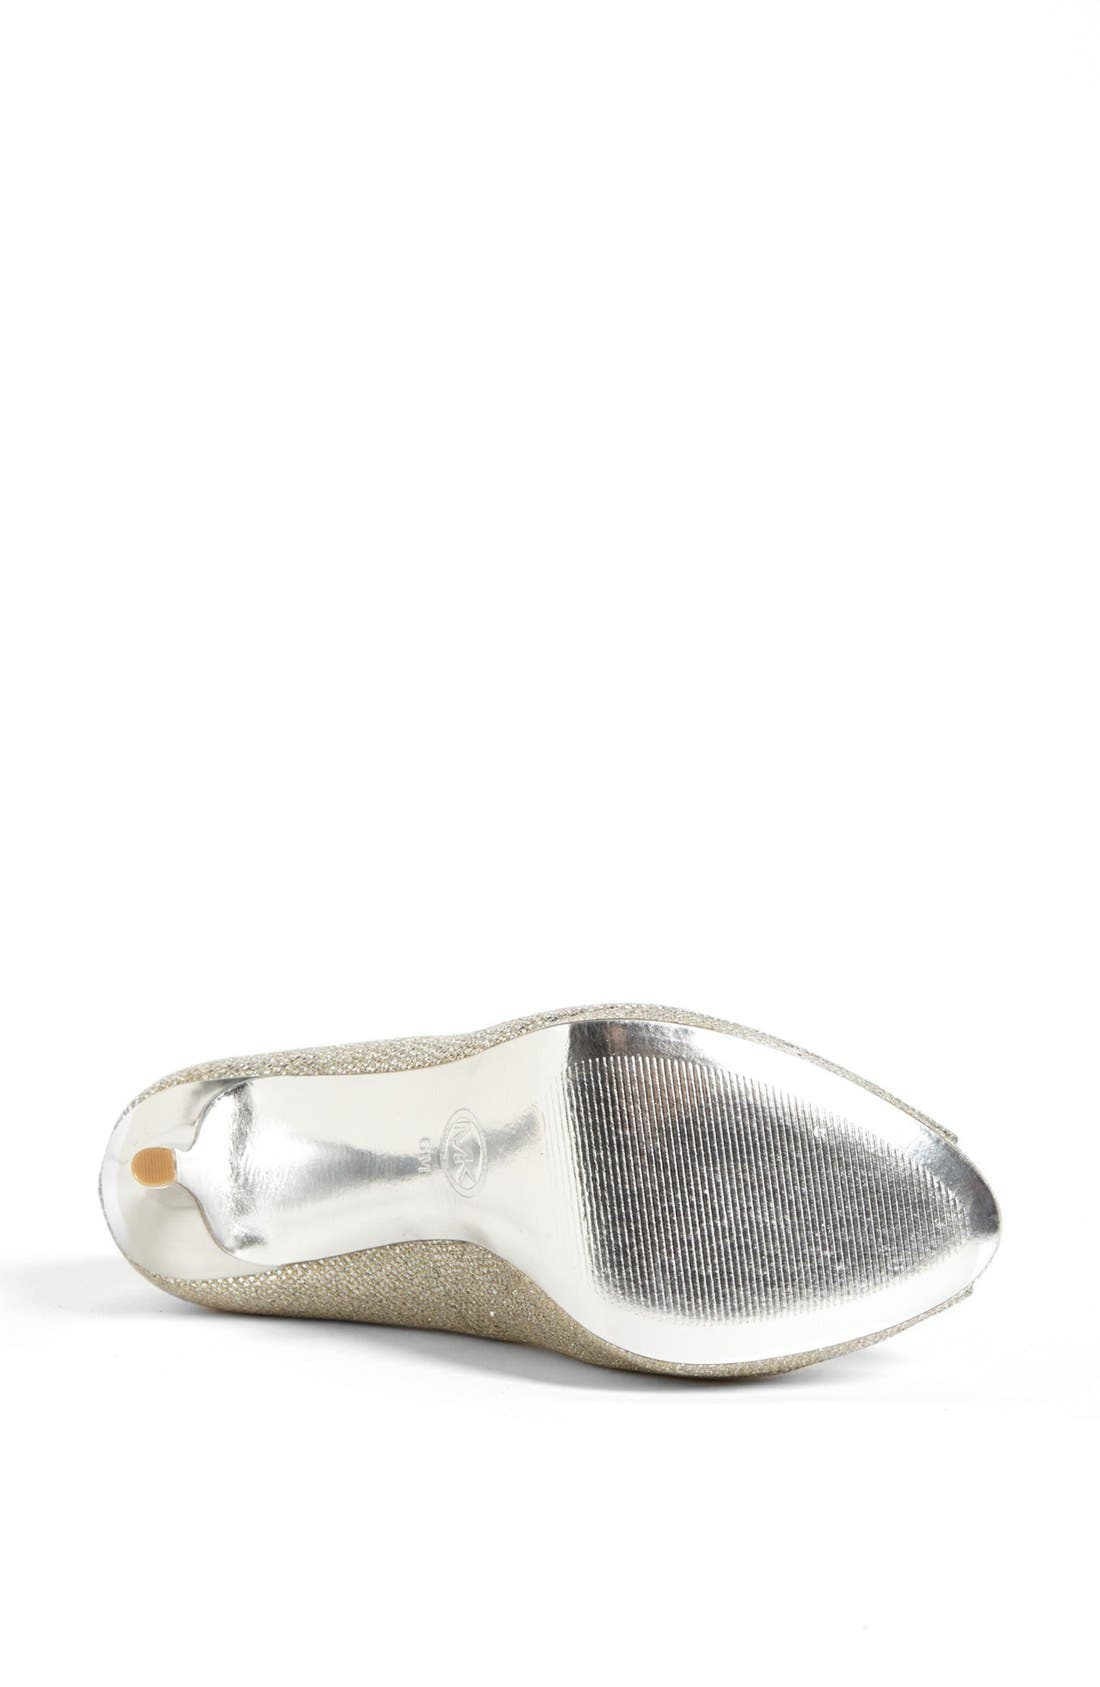 'York' Platform Pump,                             Alternate thumbnail 4, color,                             Silver